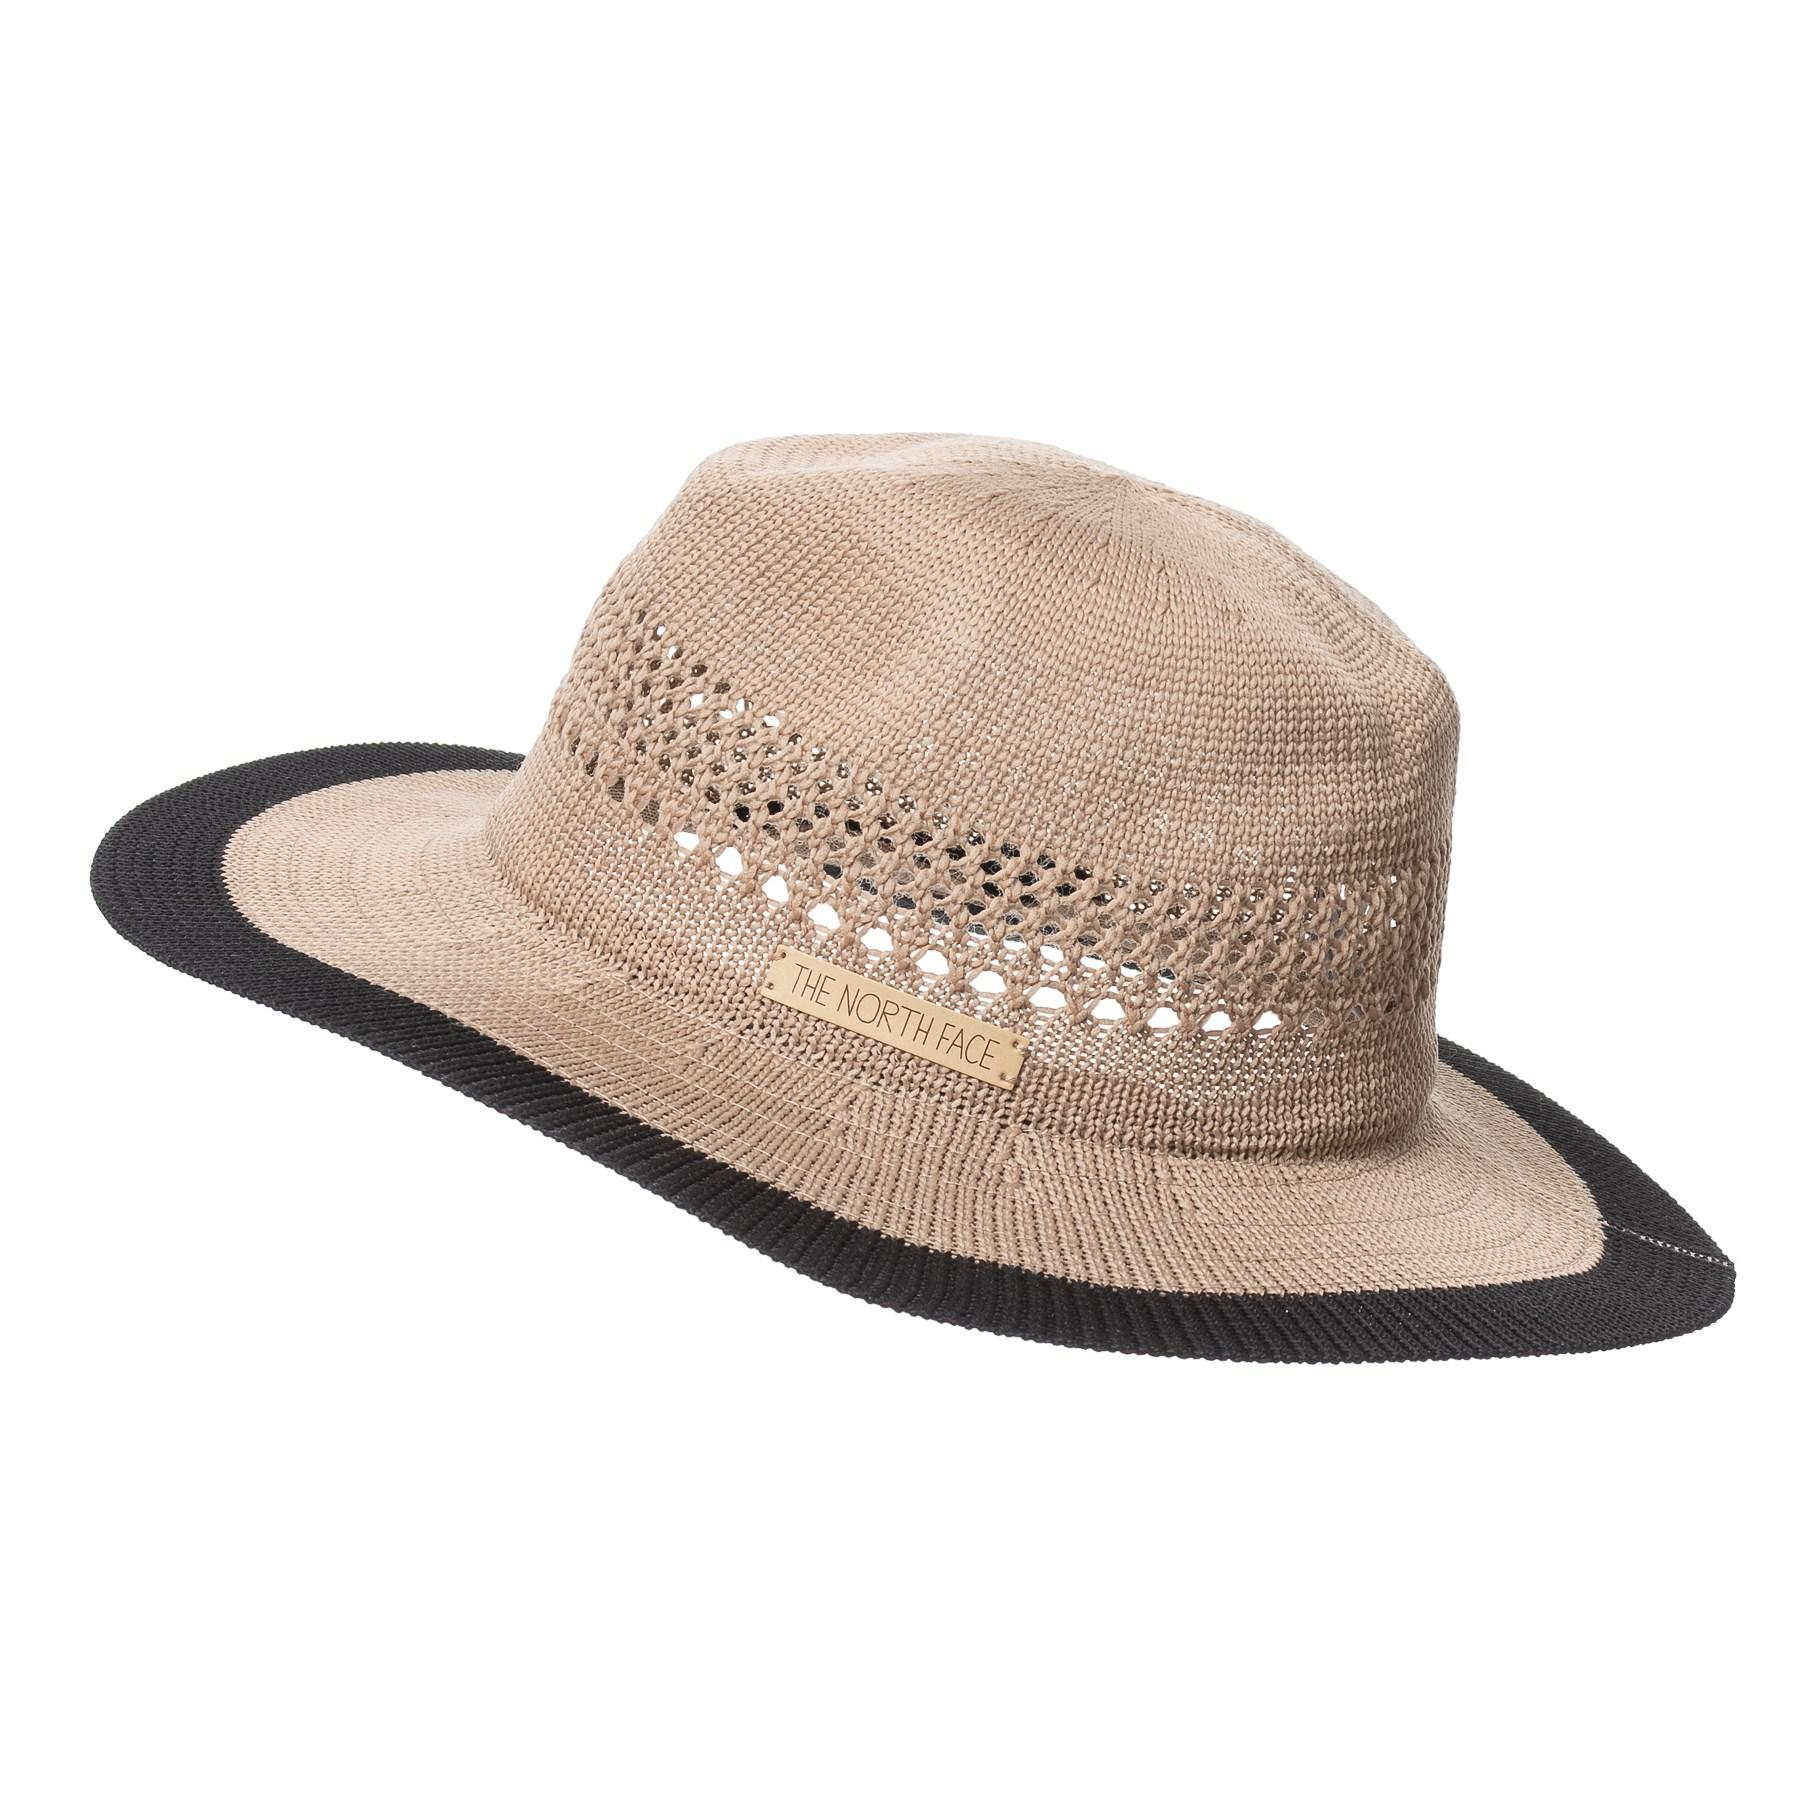 a67a5c953 The North Face Natural Packable Panama Hat (for Women)